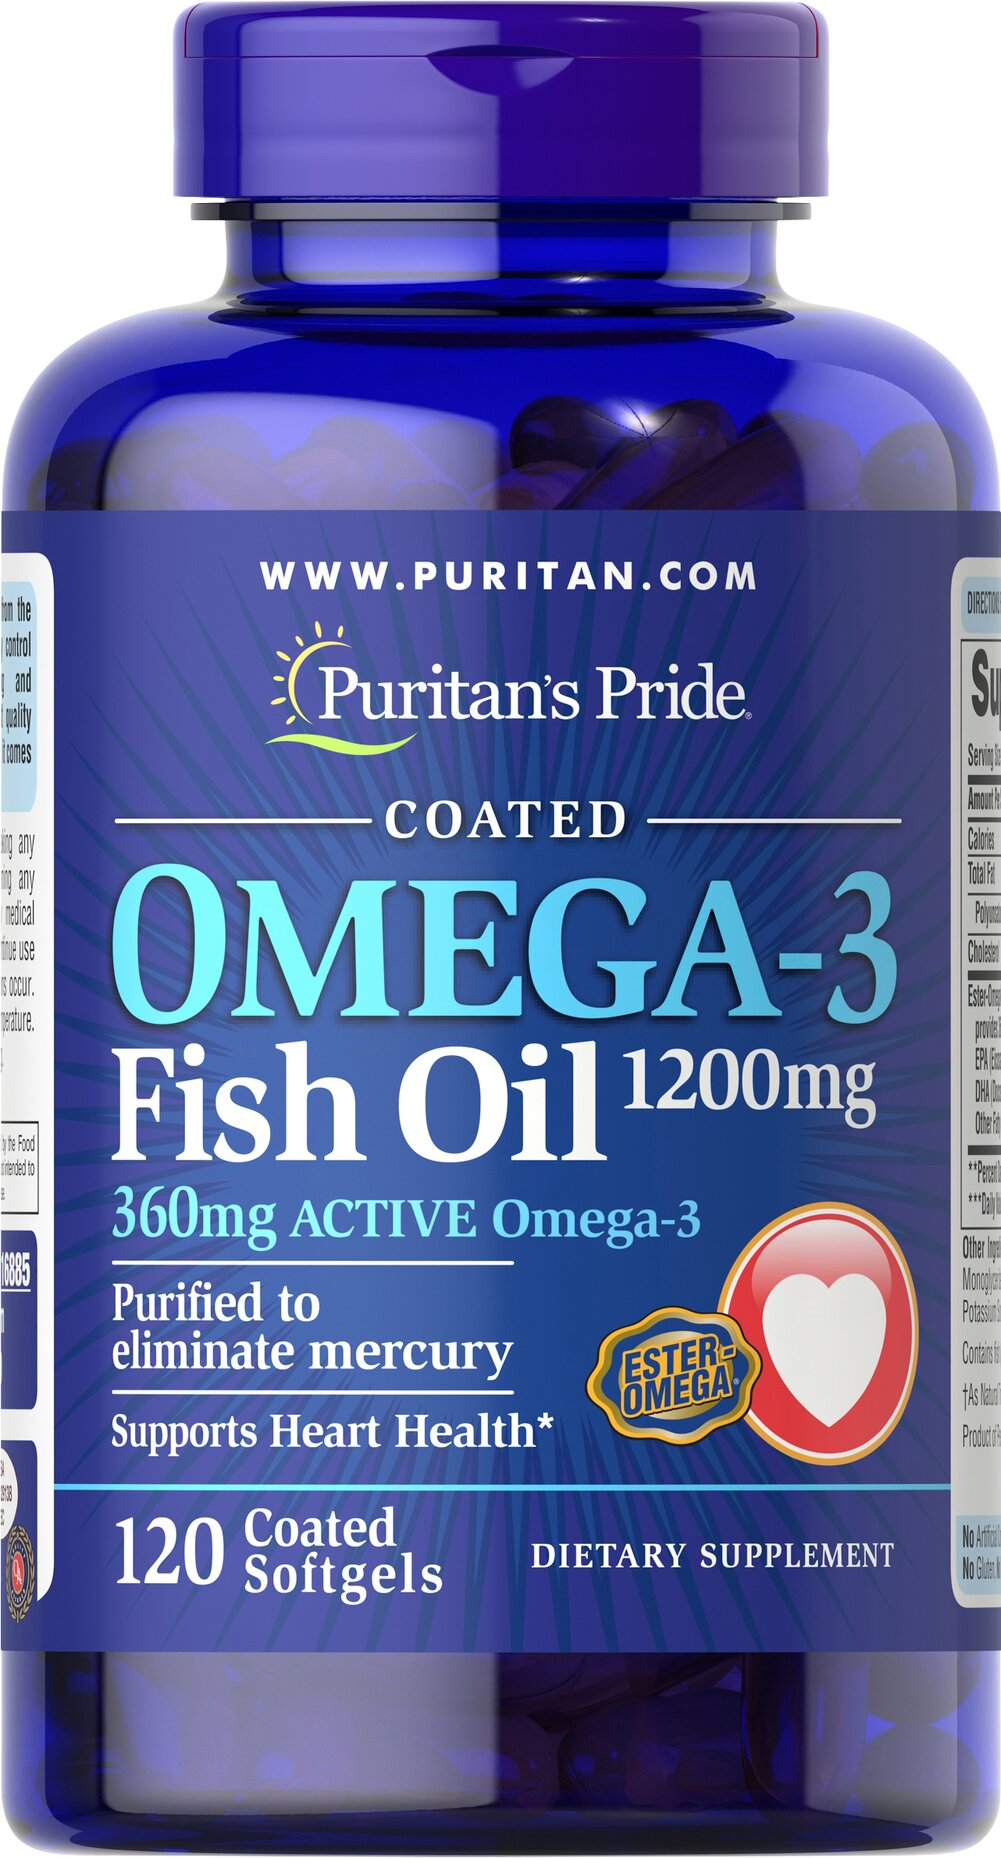 Omega-3 Fish Oil Coated 1200 mg (360 mg Active Omega-3)  120 Coated Softgels 1200 mg $27.99